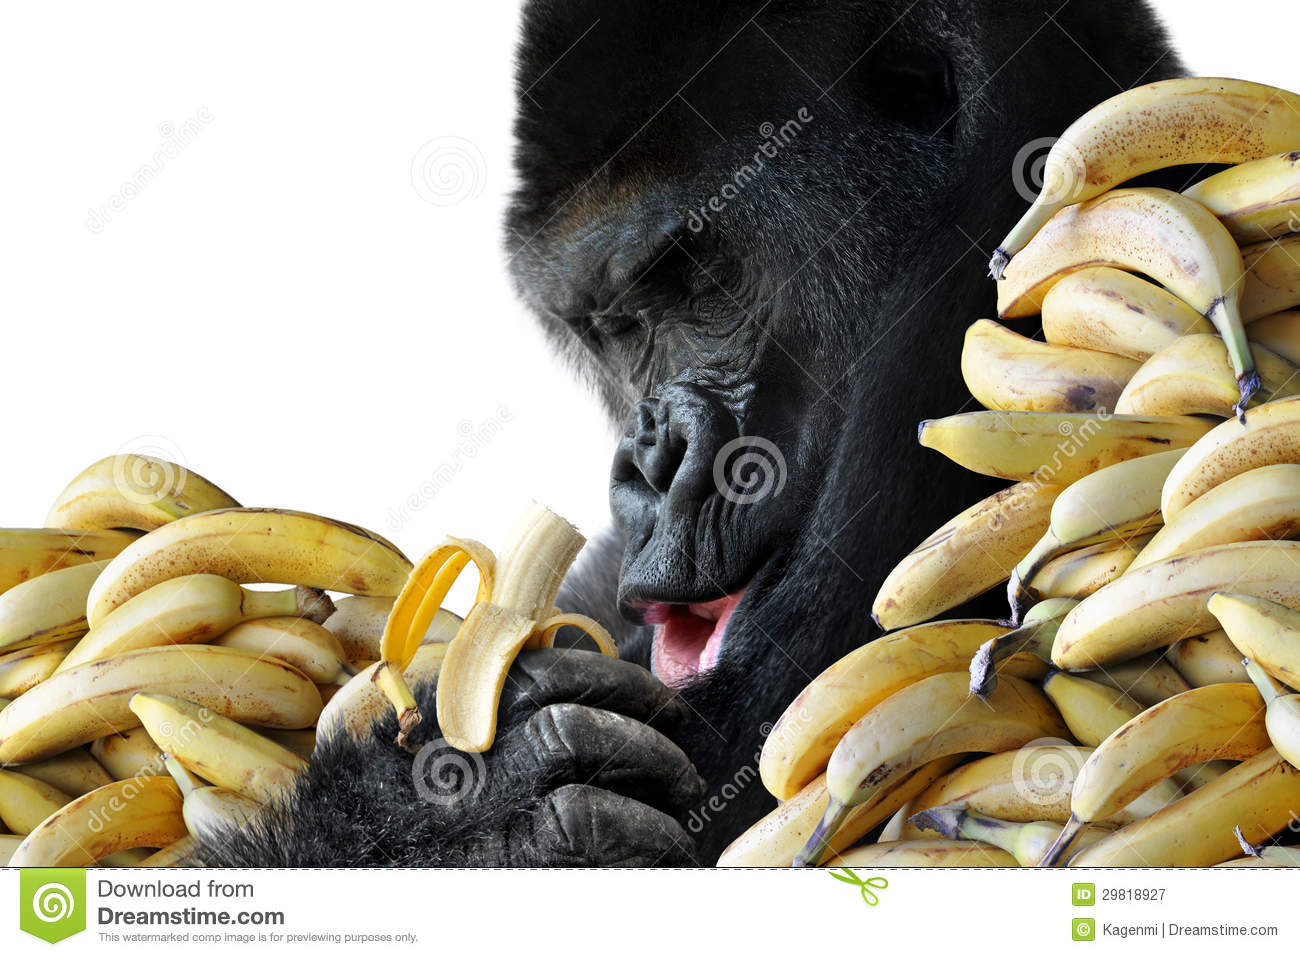 Big Hungry Gorilla Eating A Healthy Snack Of Bananas For Breakfast ...